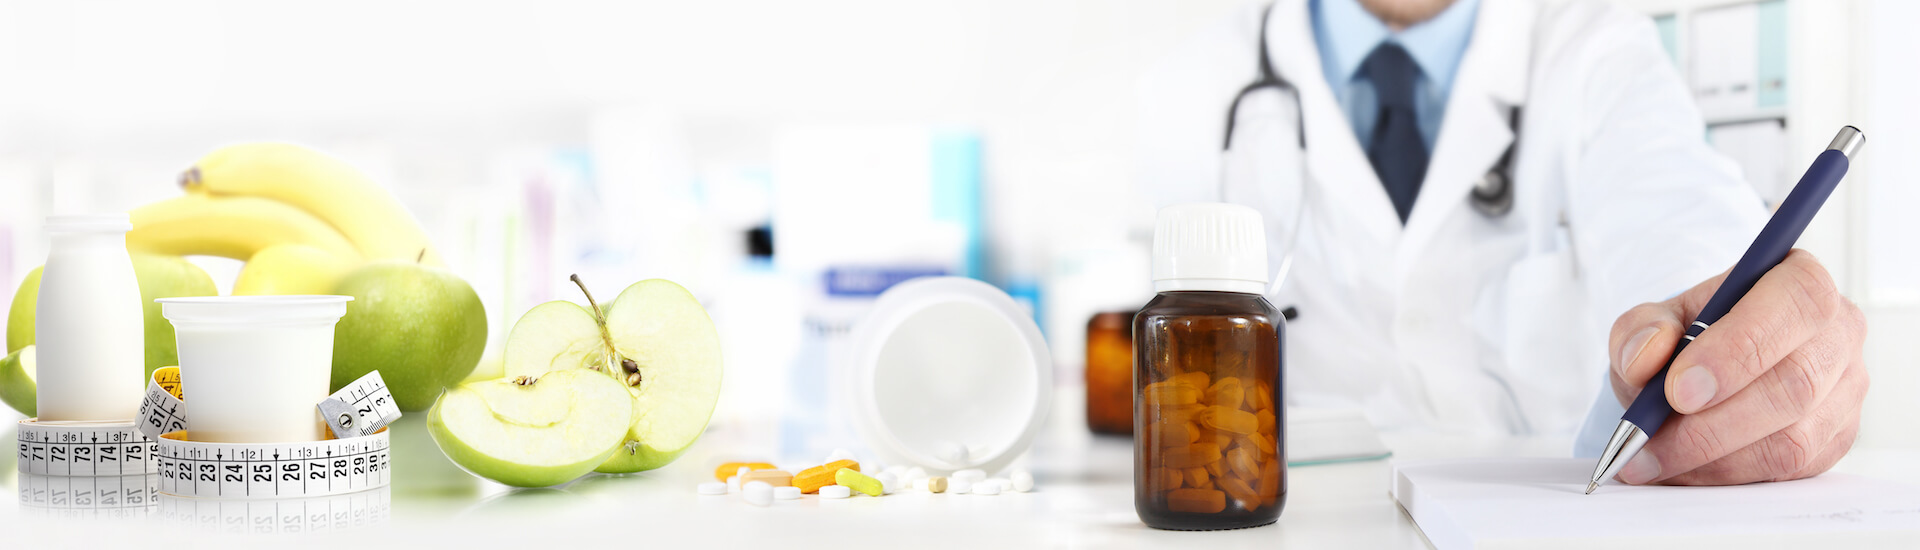 Apotheco - Nutritionist doctor writes the medical prescription for a correct diet on a desk with fruits, drugs and supplements